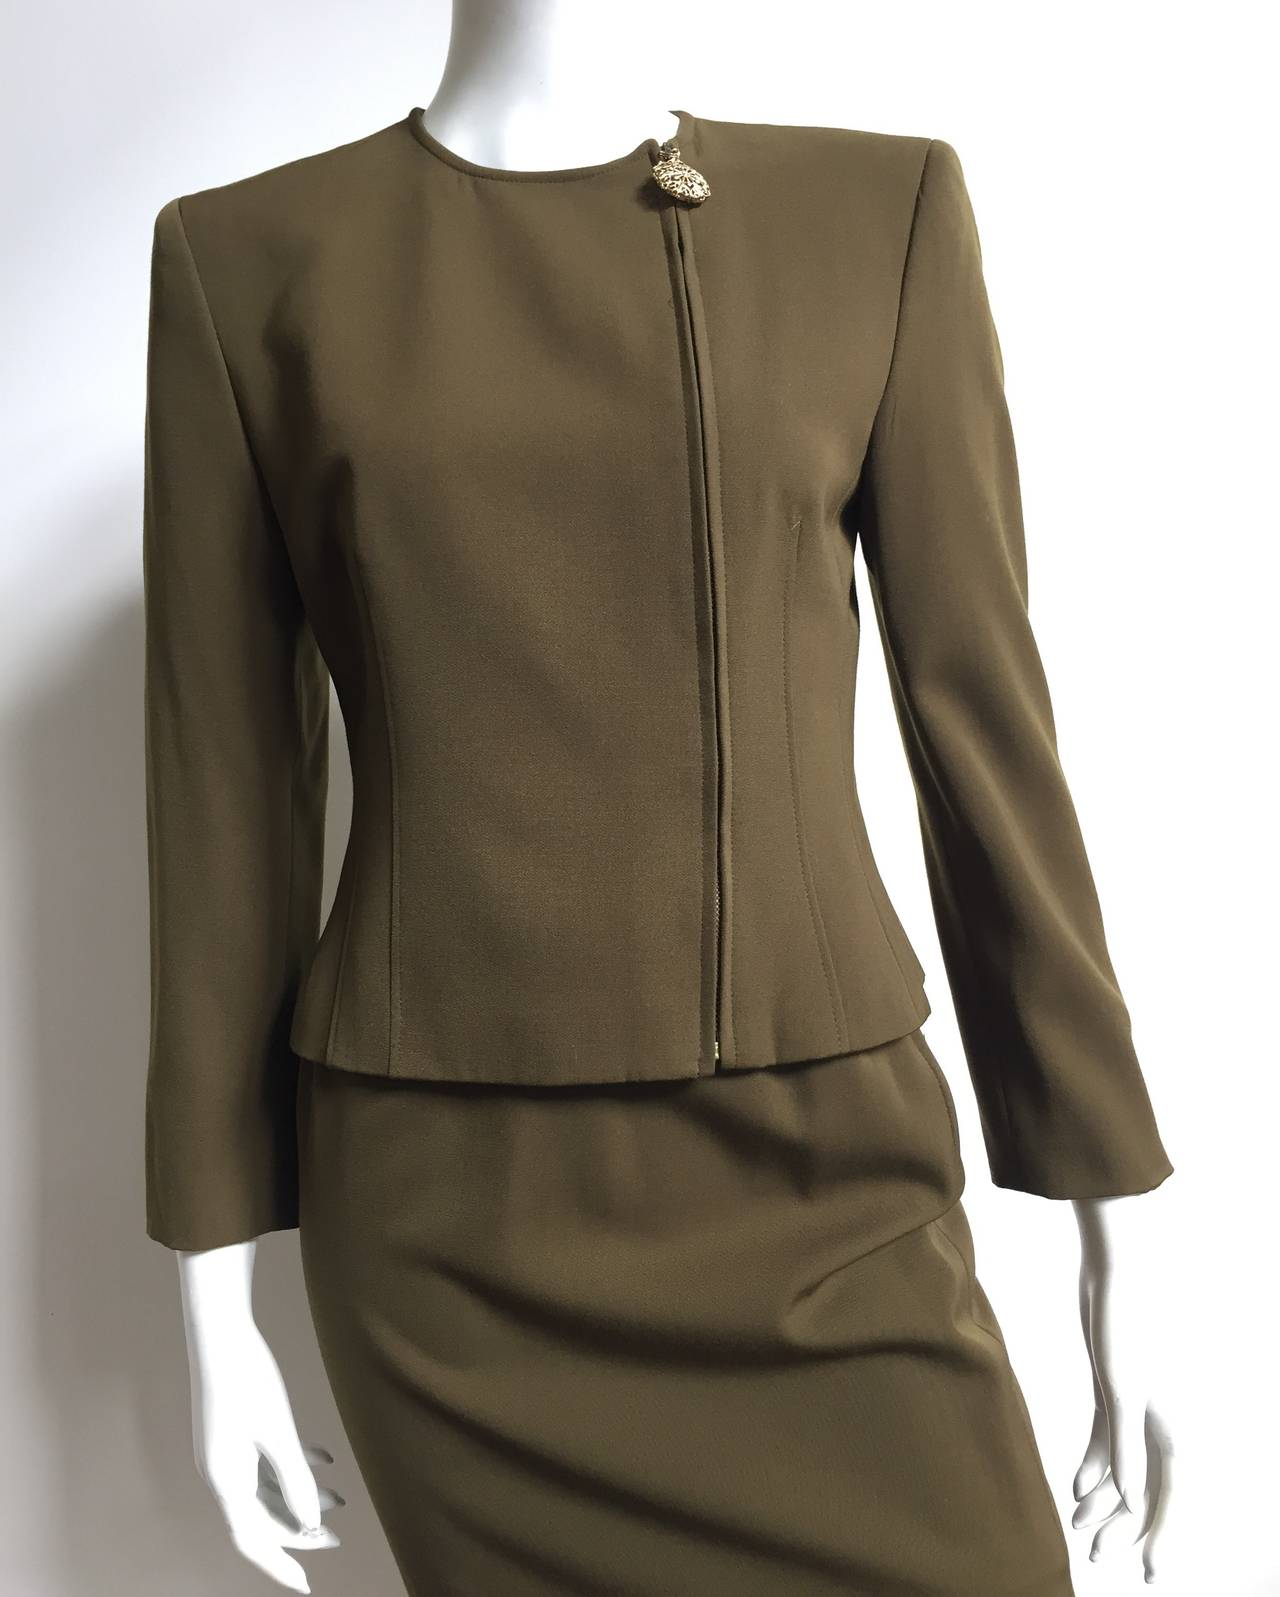 Genny by Versace Olive Skirt Suit Size 4  2